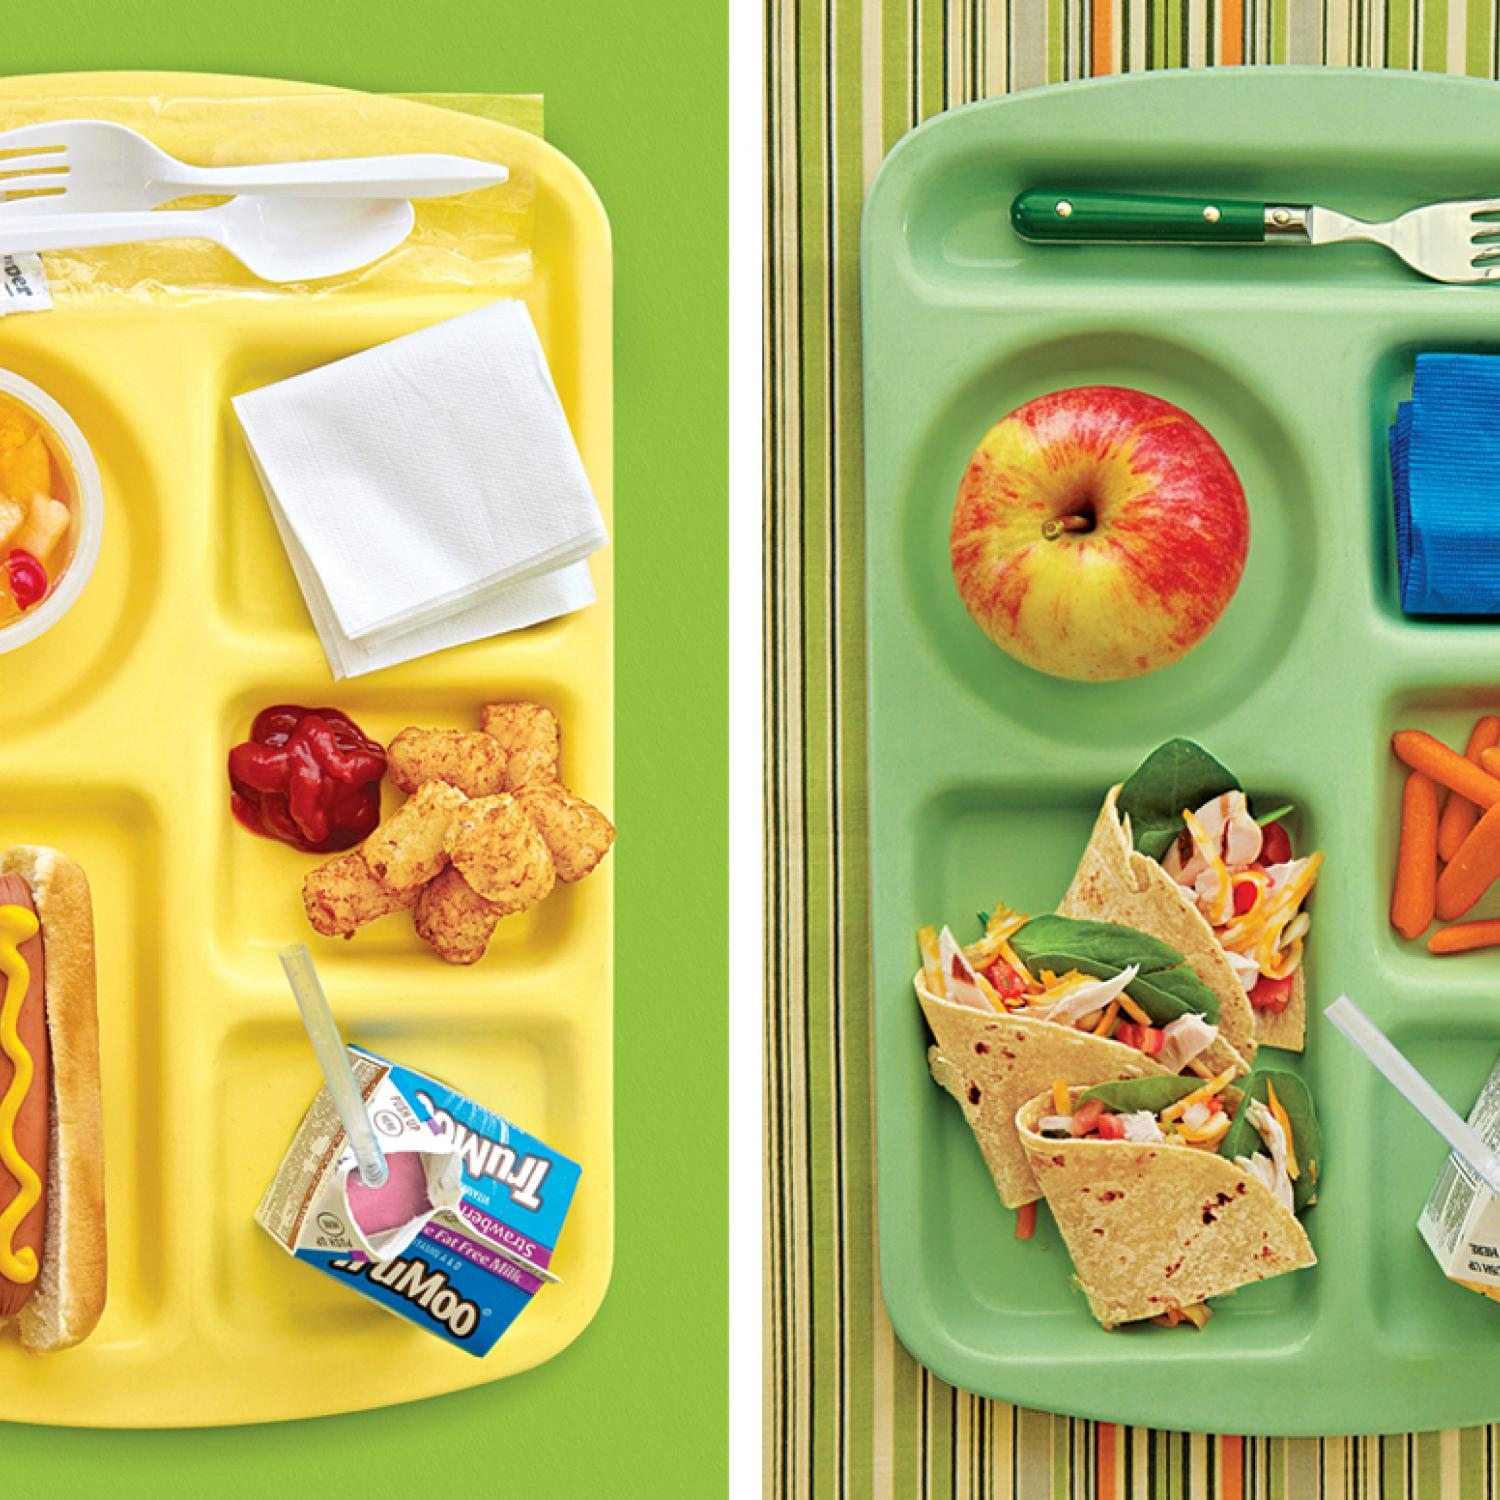 89 easy healthy food ideas for toddlers 30 kid friendly summer